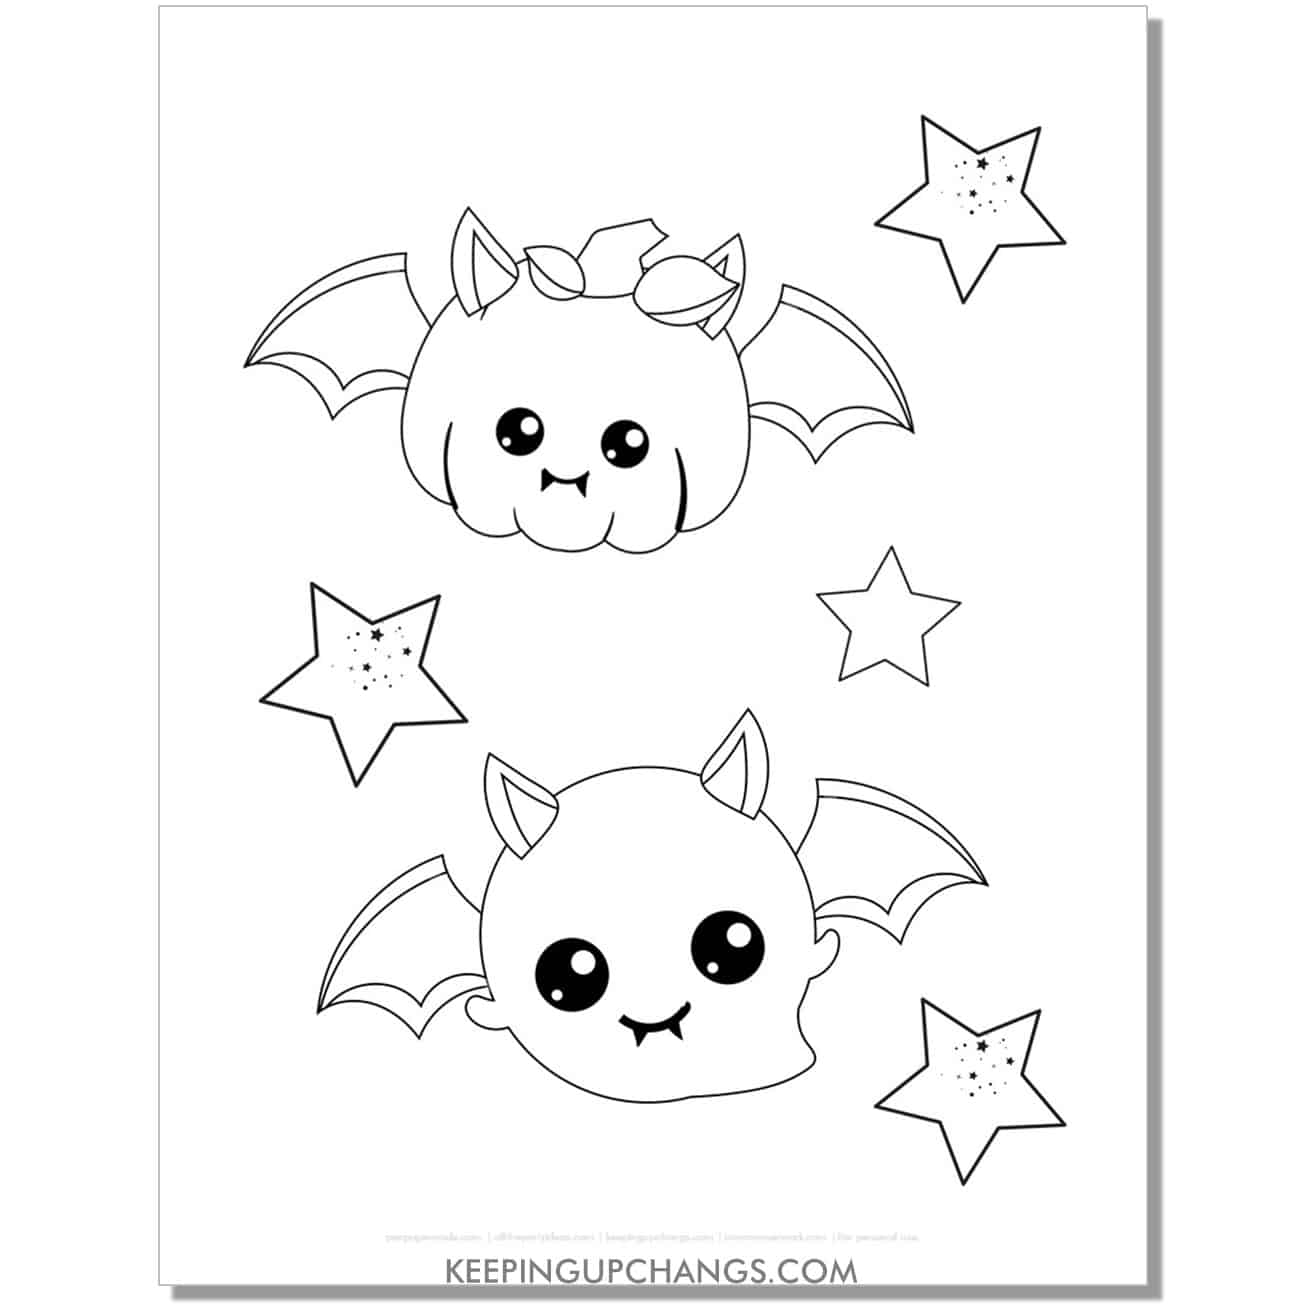 free kawaii pumpkin and ghost bat halloween coloring page for kids.